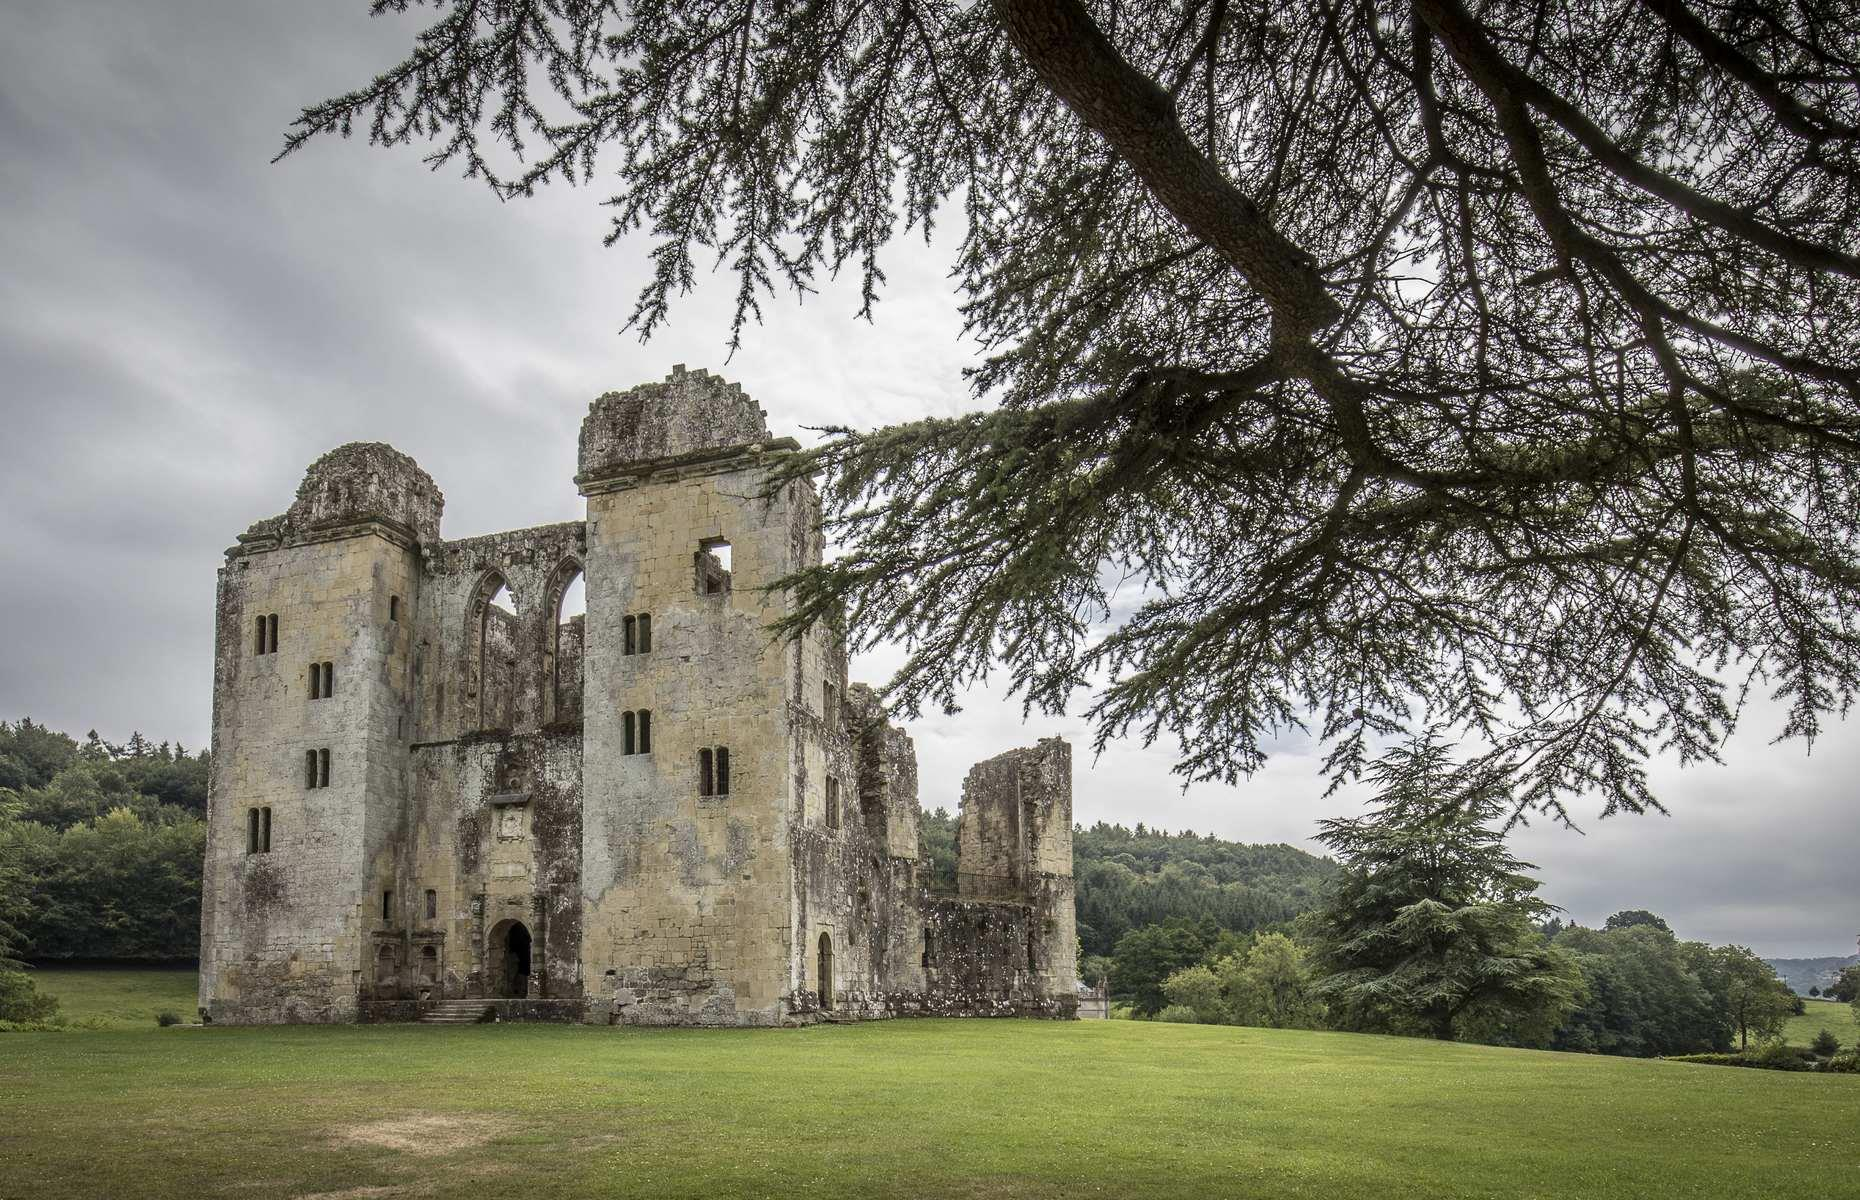 Slide 13 of 29: So deeply rooted is Old Wardour Castle in the English countryside that it seems to have always been in this crumbling state. But in the 14th century, here stood a magnificent French-style castle, built by John Lovell after marrying heiress Maud Holland.